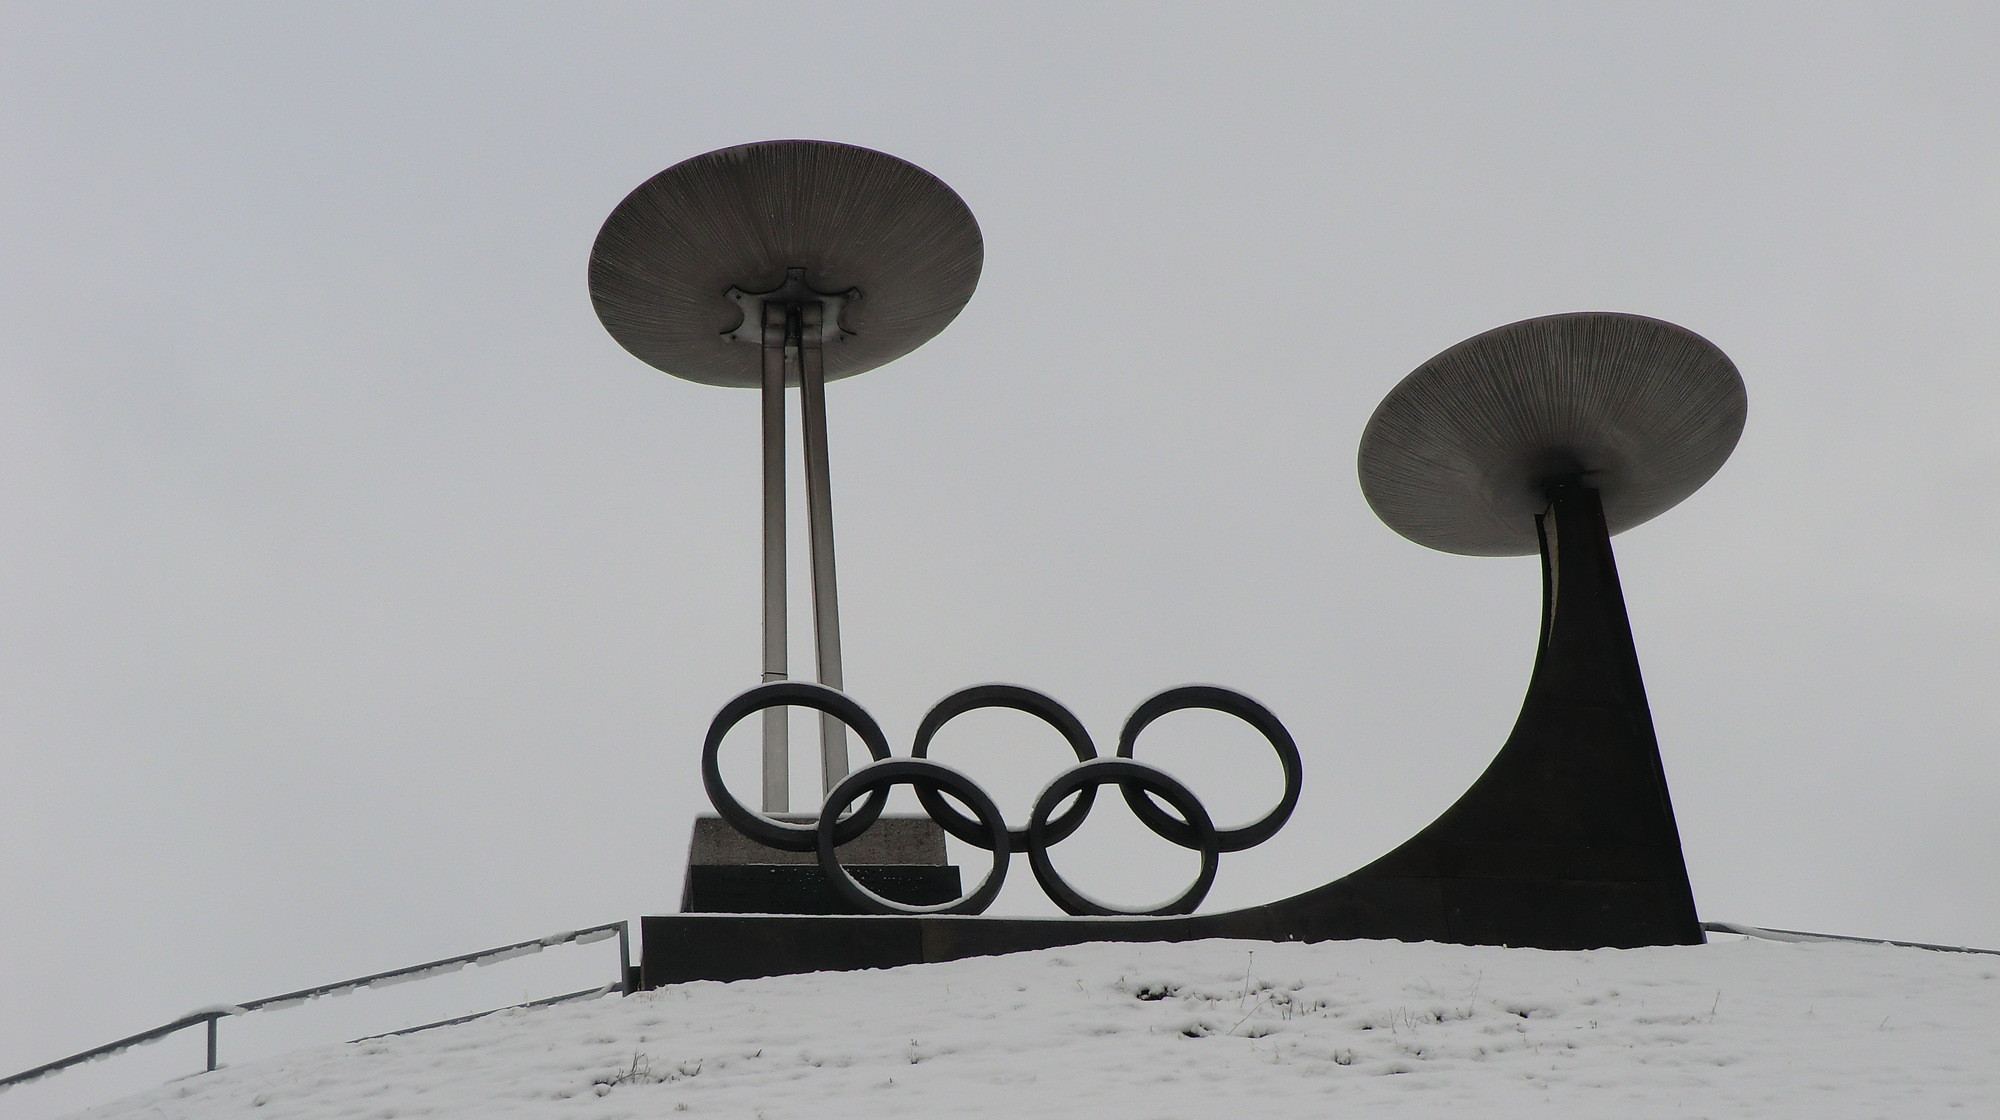 The Olympic cauldrons for 1964 and 1976 at Innsbruck ©Philip Barker